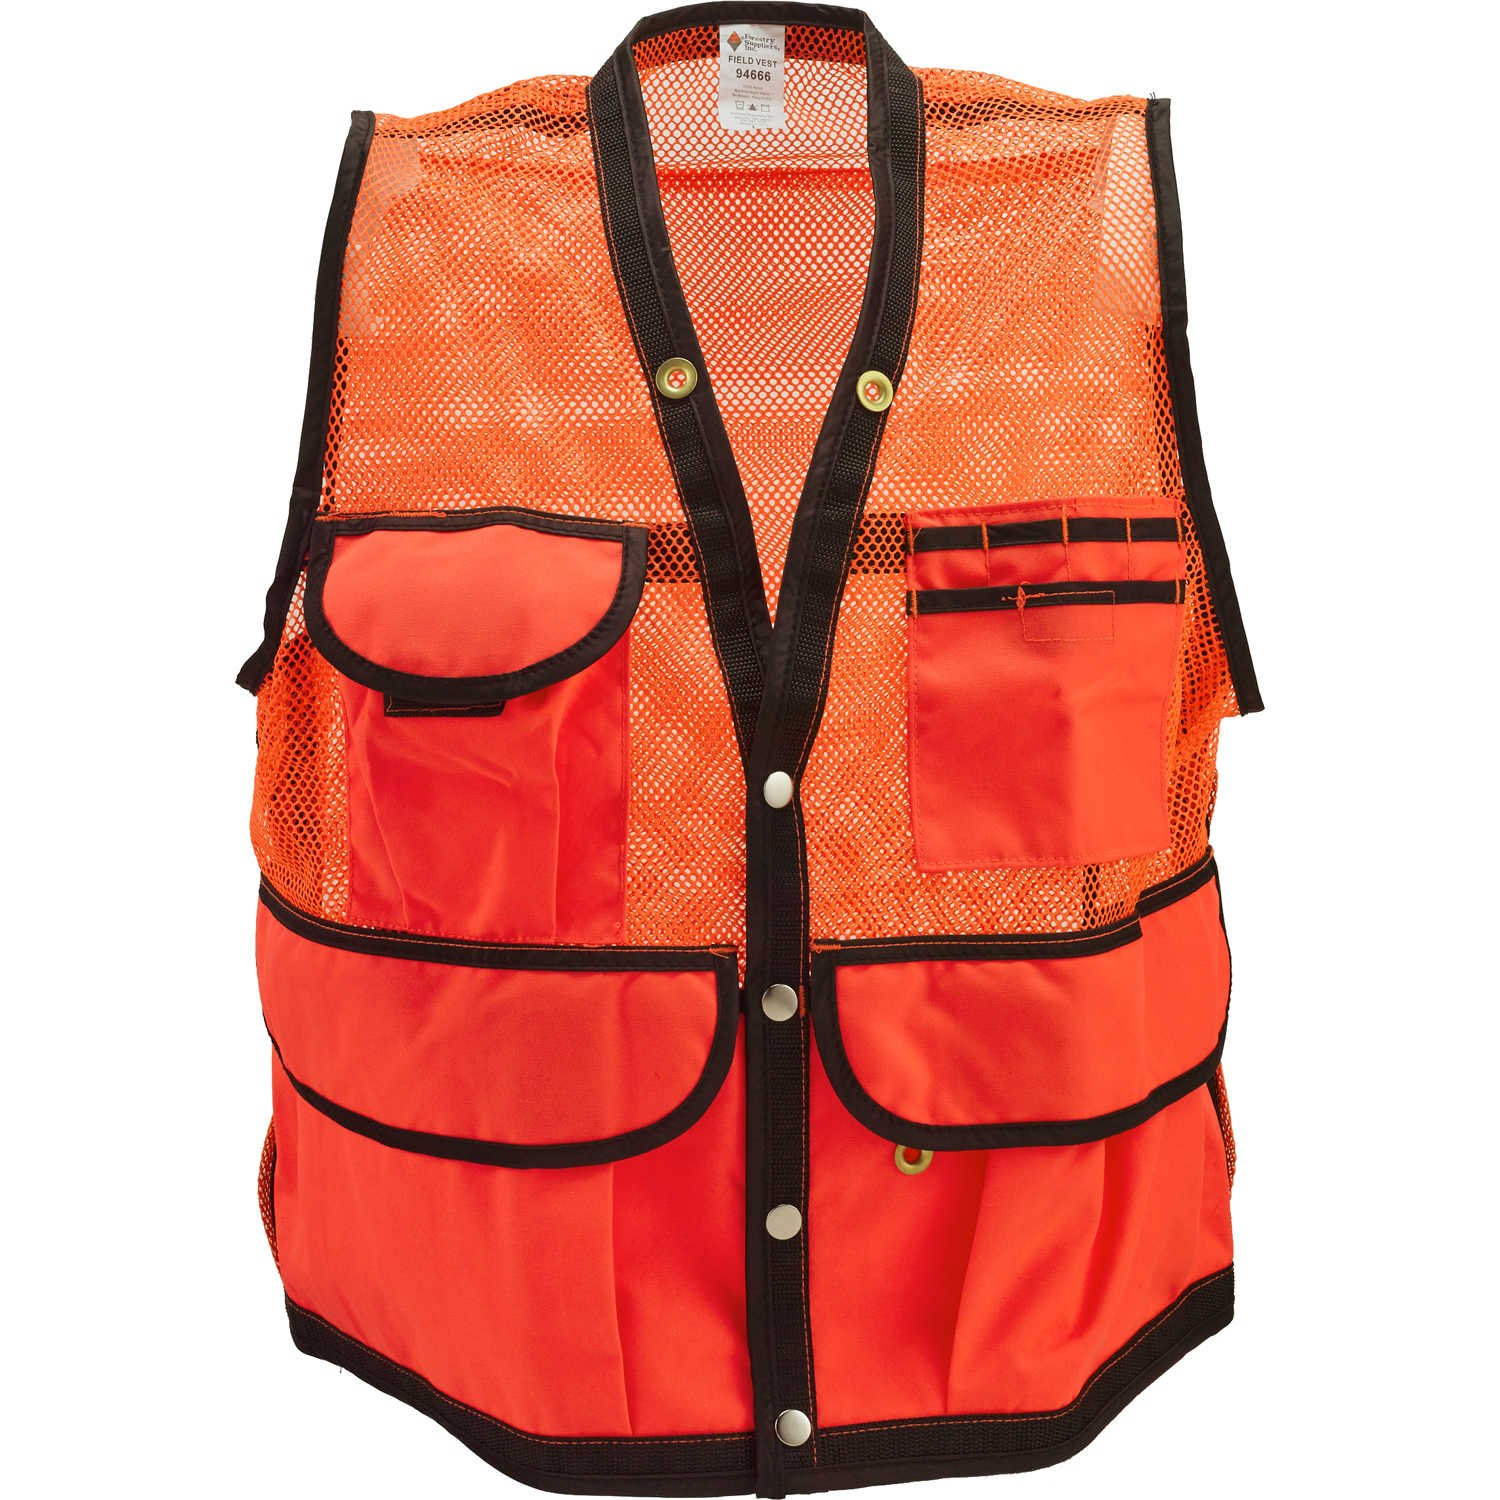 JIM-GEM 8-Pocket Nylon Mesh Cruiser Vest Orange X-Large